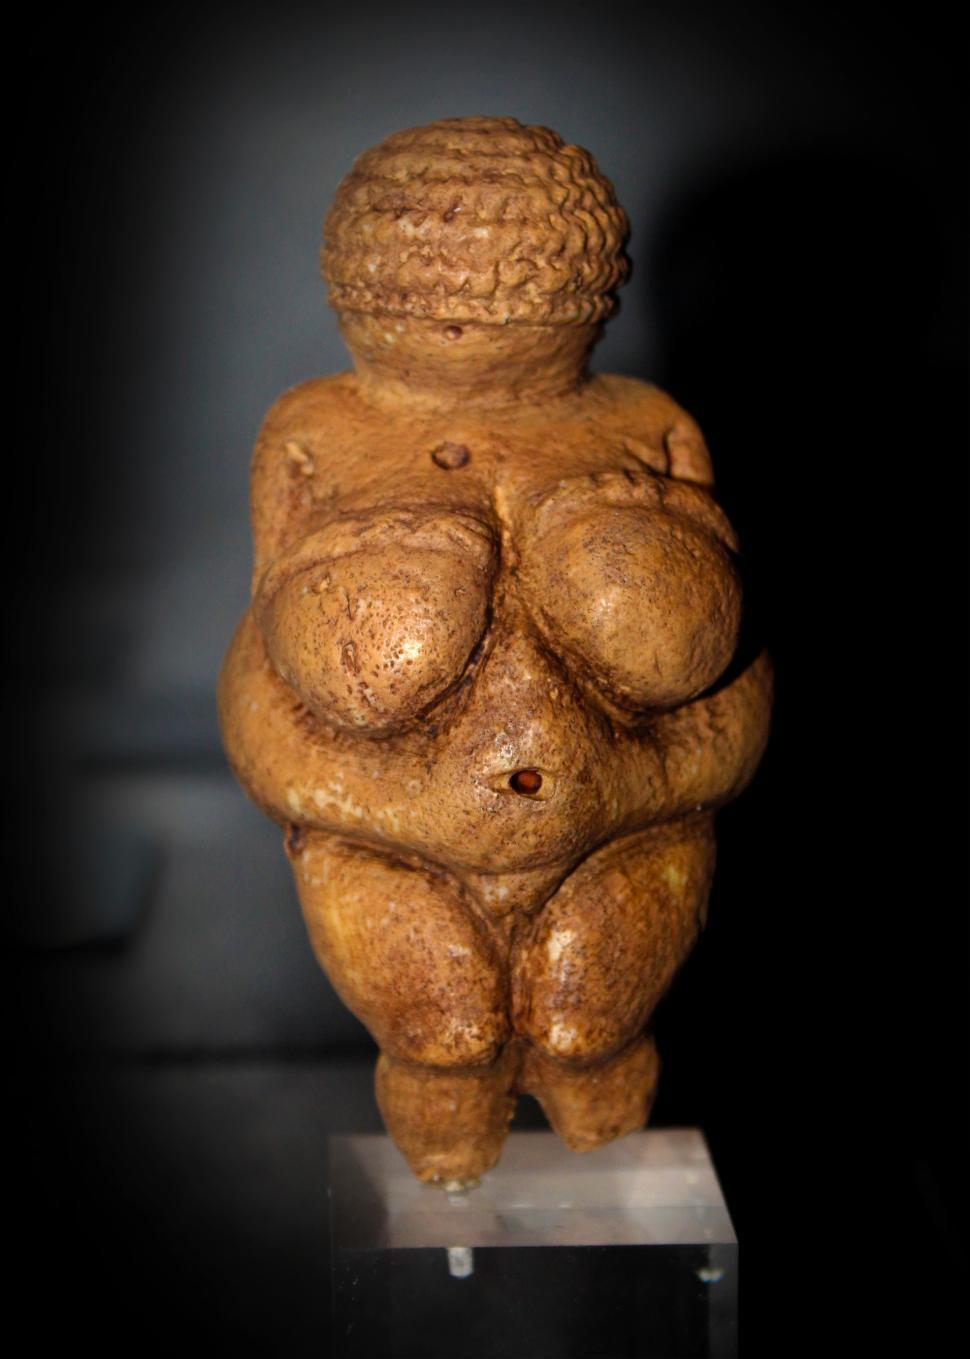 Download Free Stock HD Photo of Venus of Willendorf - European Upper Paleolithic Art Online